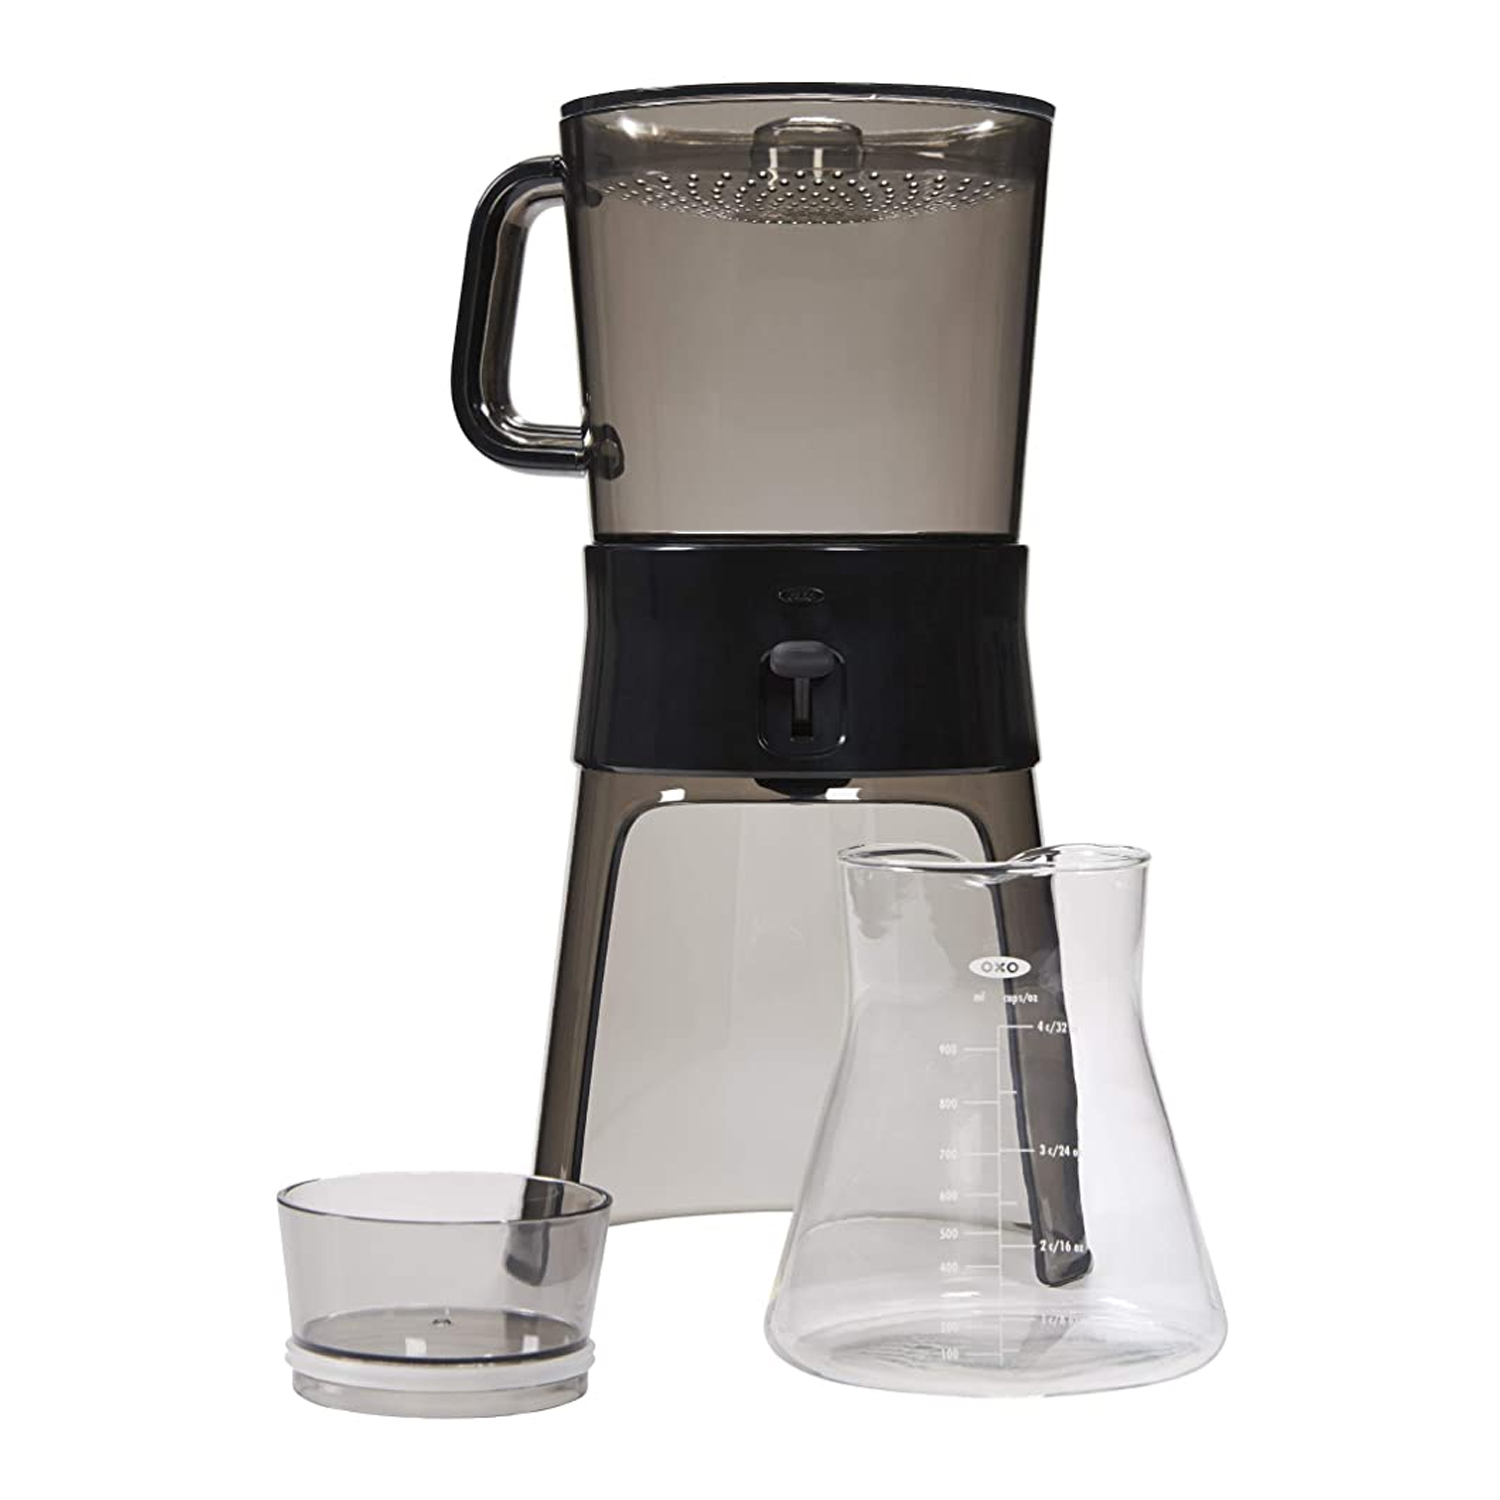 black and clear cold brew coffee maker by oxo